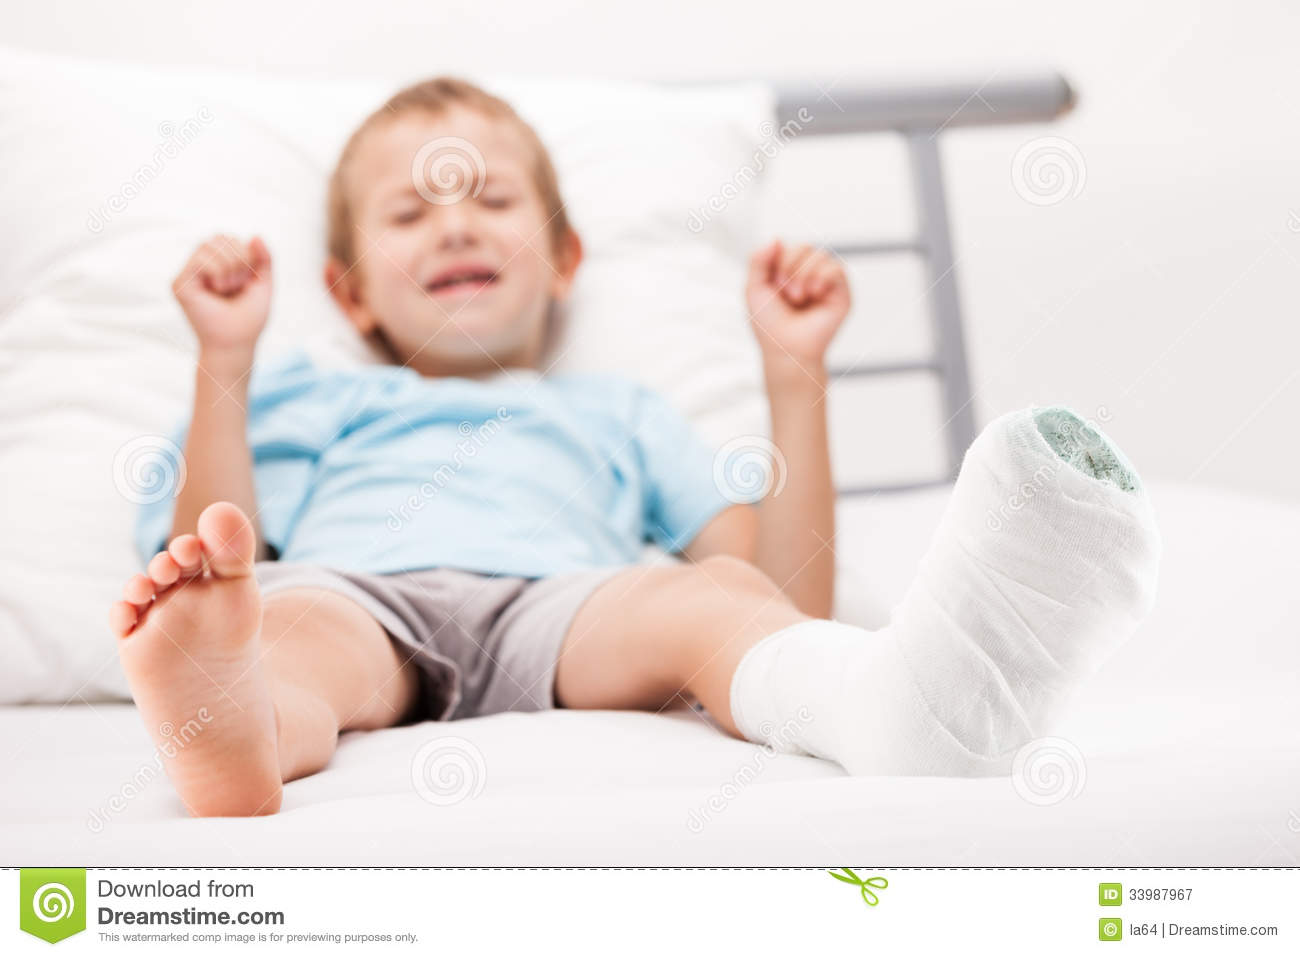 ... boy with plaster bandage on leg heel fracture or broken foot bone